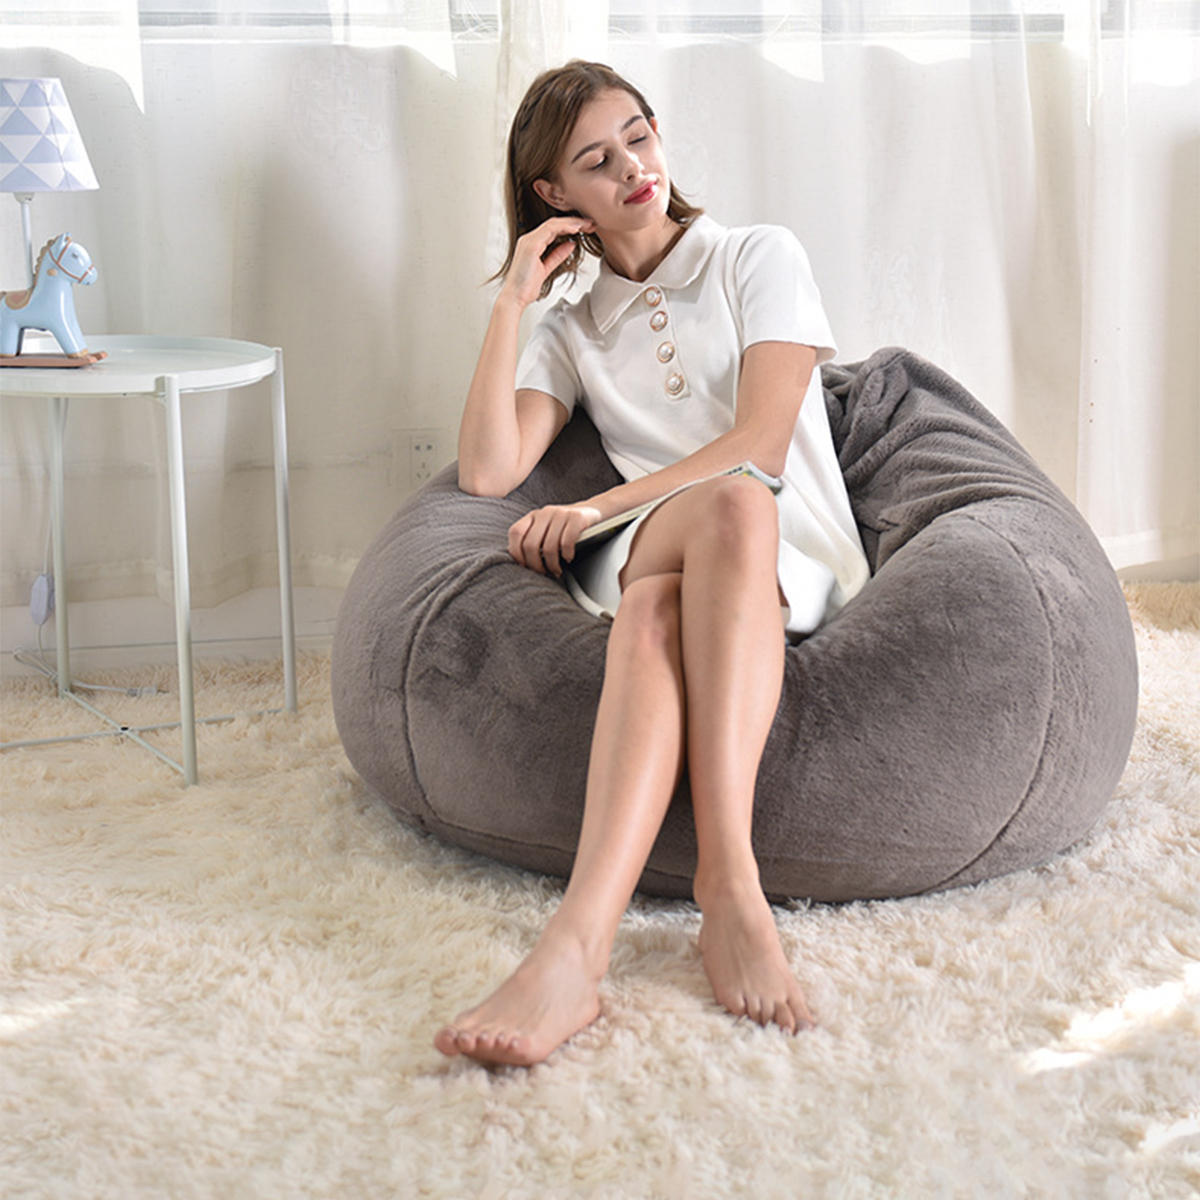 Pleasant Nesloth Xl Large Bean Bag Chair Cover Indoor Lazy Manmade Rabbit Fur Sofa For Adult Kids 70 80 Bean Bag Cover Containing Inner Liner Cover Caraccident5 Cool Chair Designs And Ideas Caraccident5Info